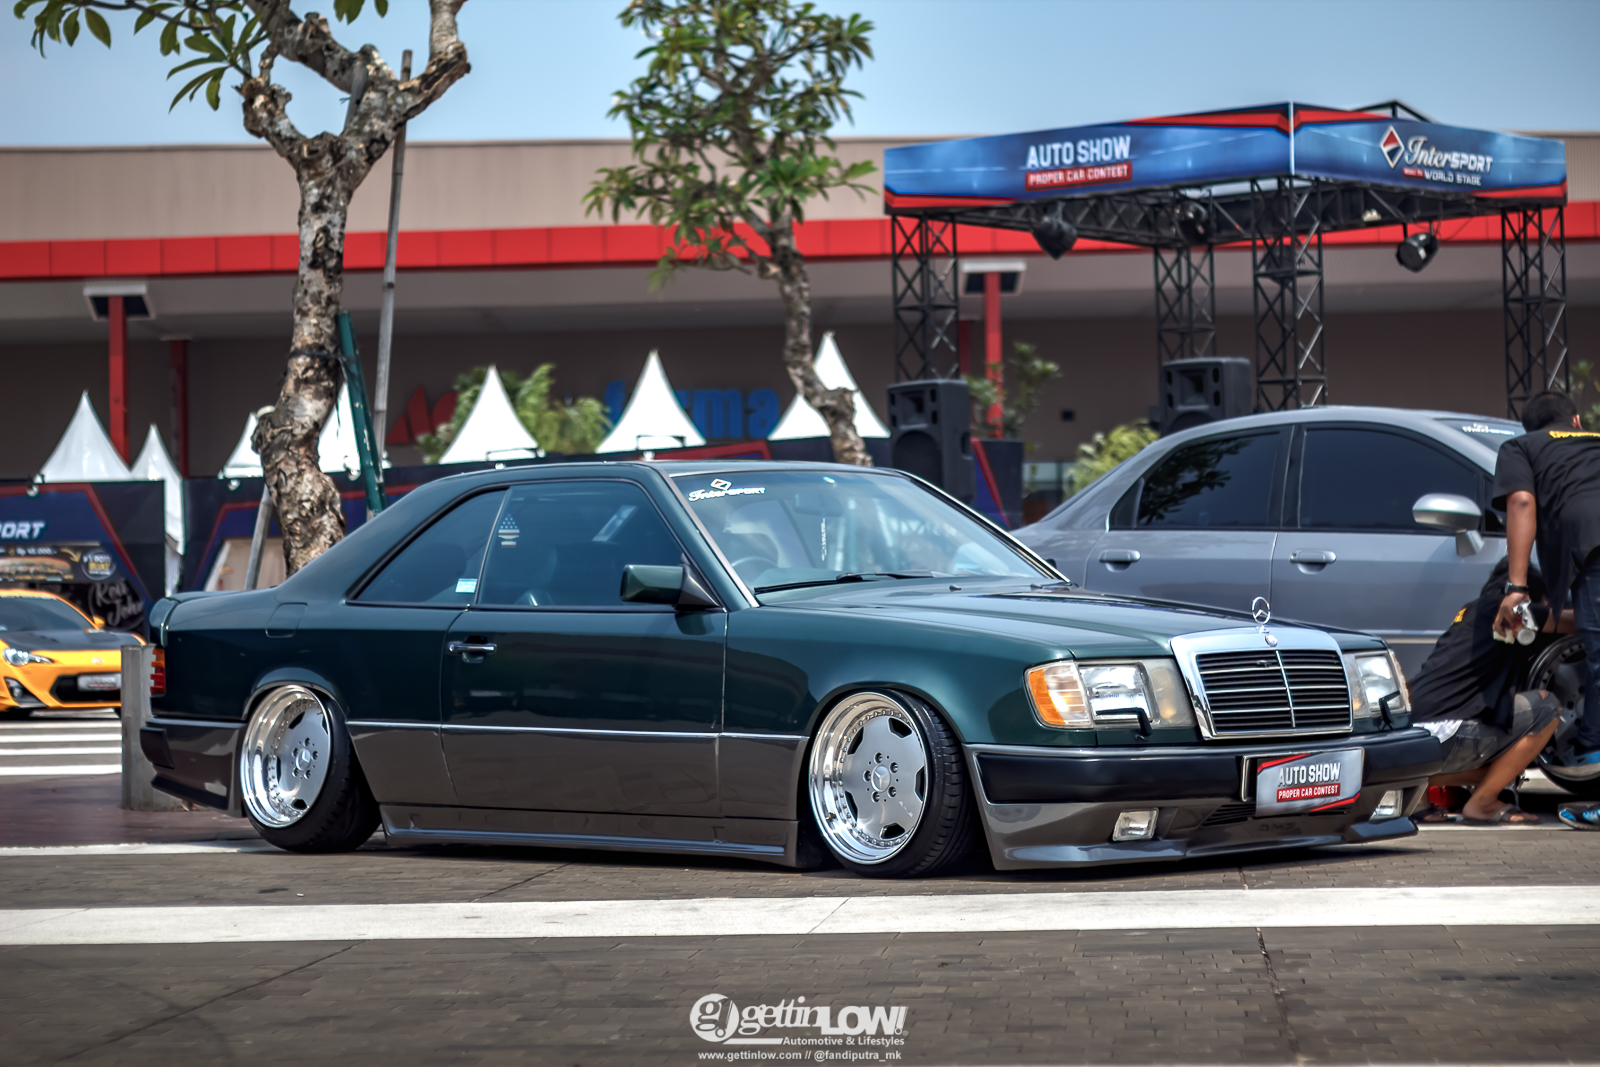 INTERSPORT-PROPERCARCONTEST-QBIG-CANON-28